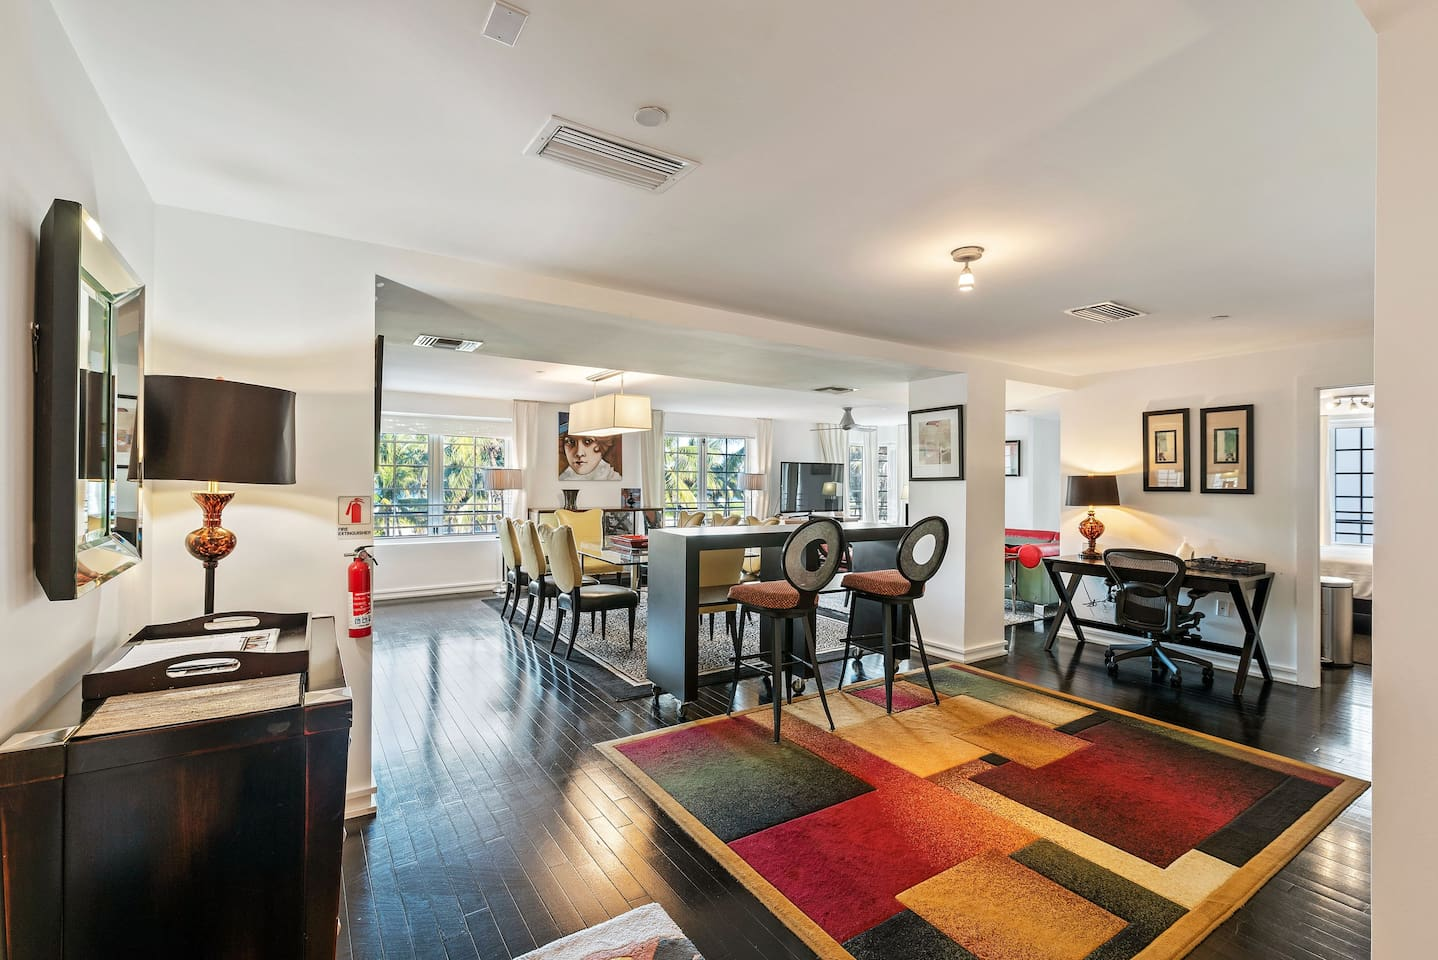 You walk into this spacious, elegant apartment, gaze out of the five windows looking out at Ocean Drive and the beach, and know that you have chosen well.   This is what you see when you walk into the door.